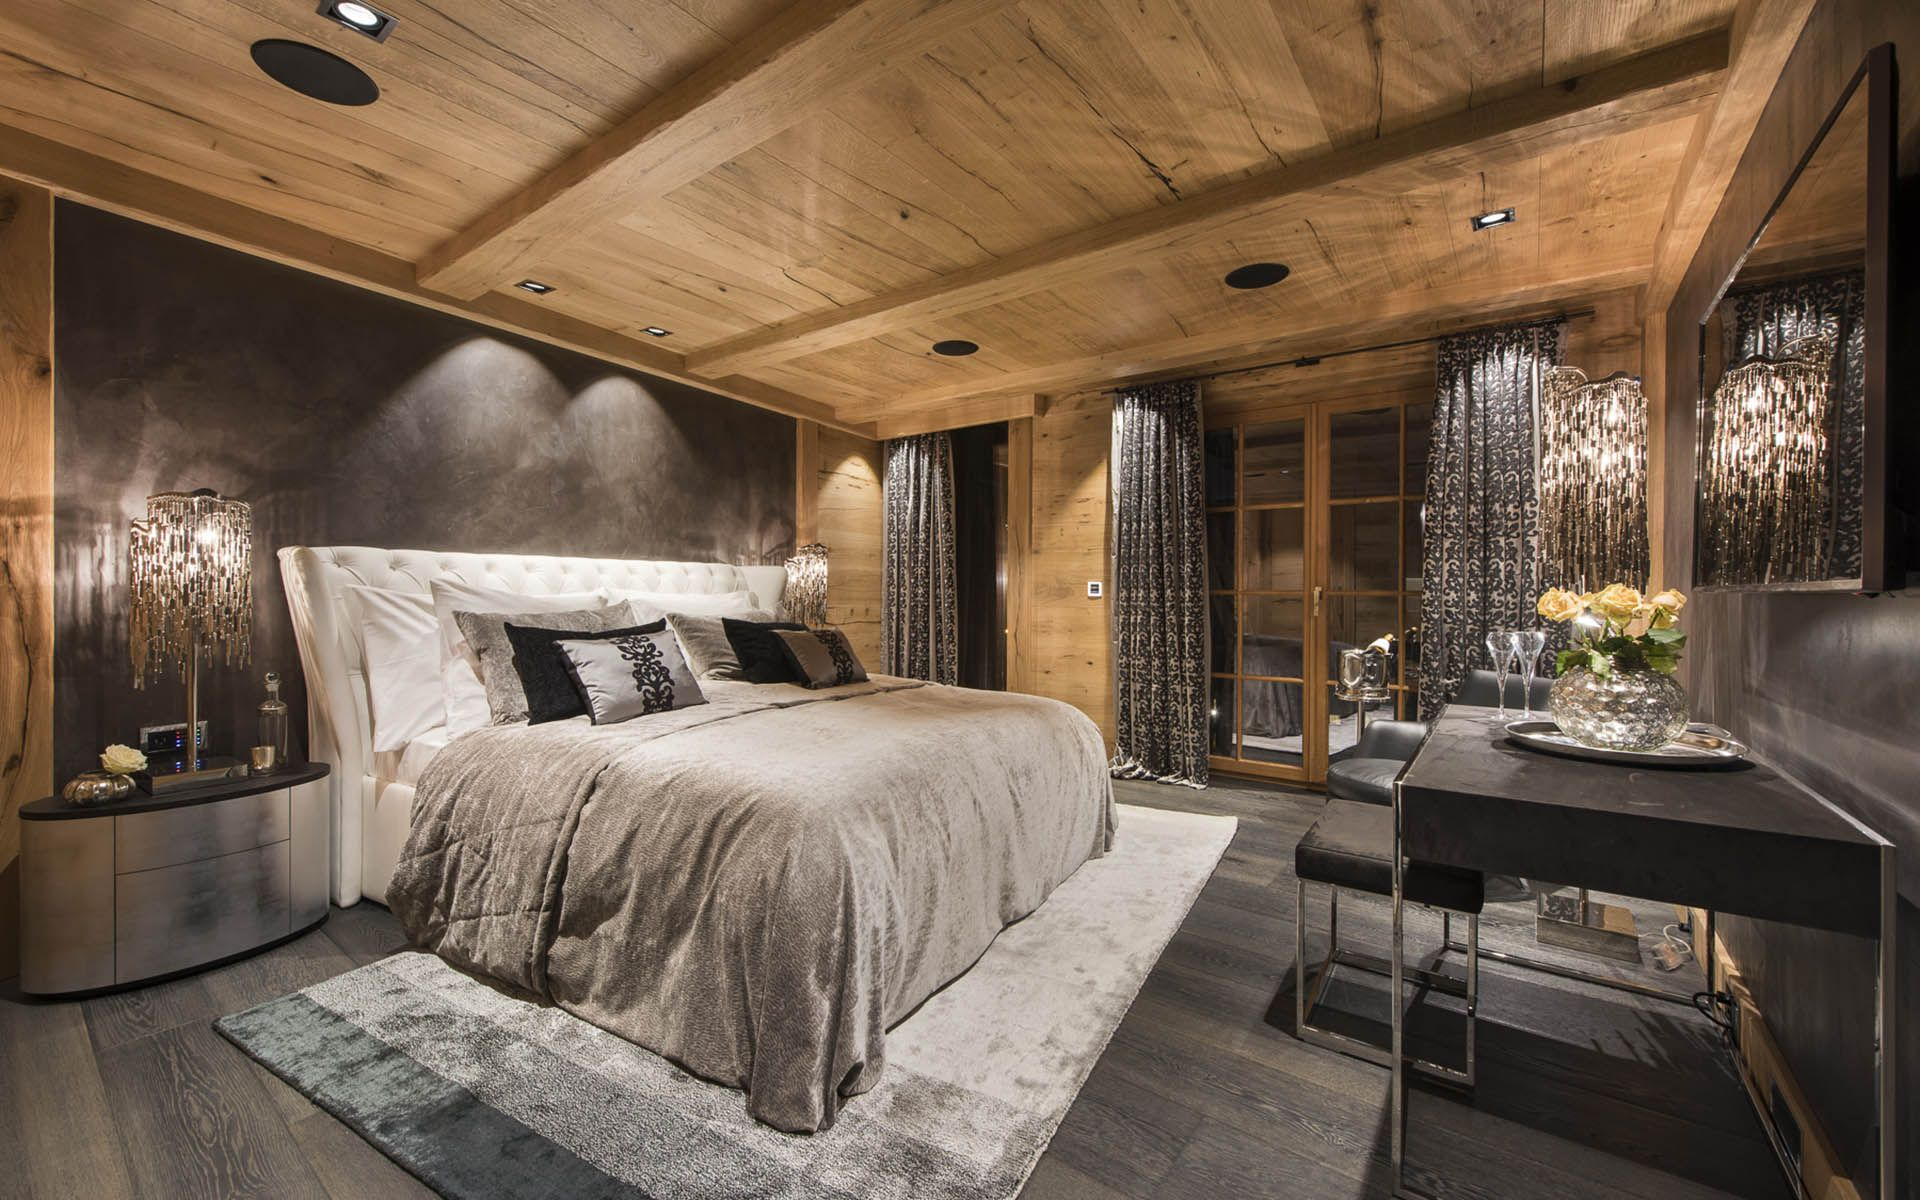 Luxury Ski Chalet Aconcagua Zermatt Switzerland Photo 13224